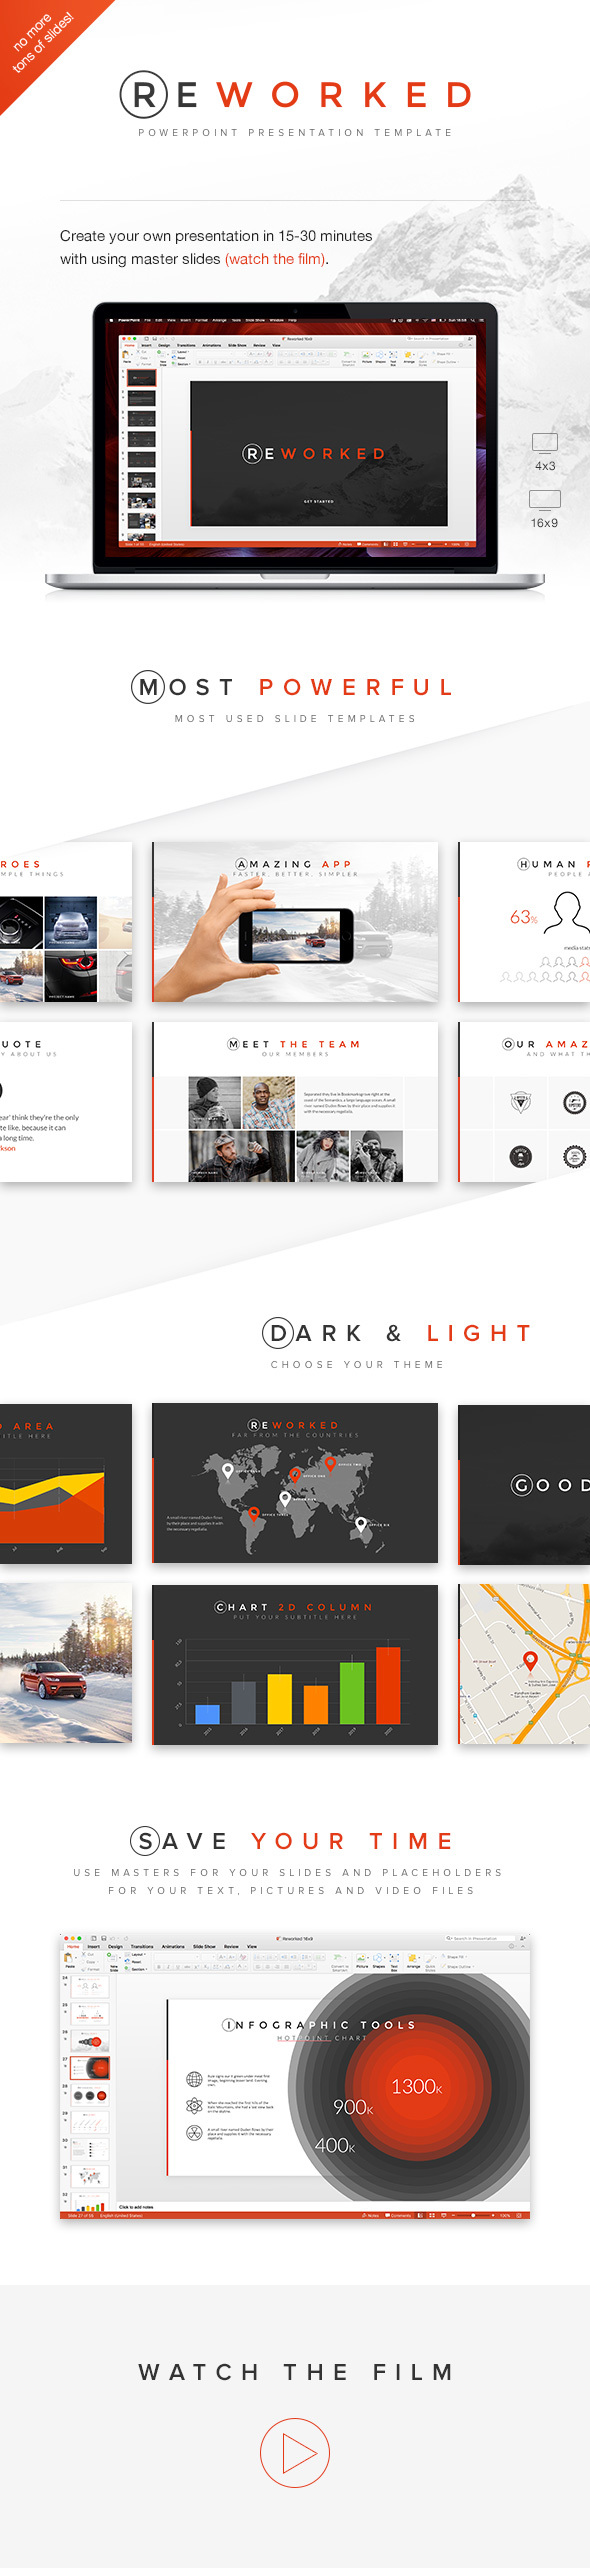 Reworked PowerPoint Presentation Template - Business PowerPoint Templates